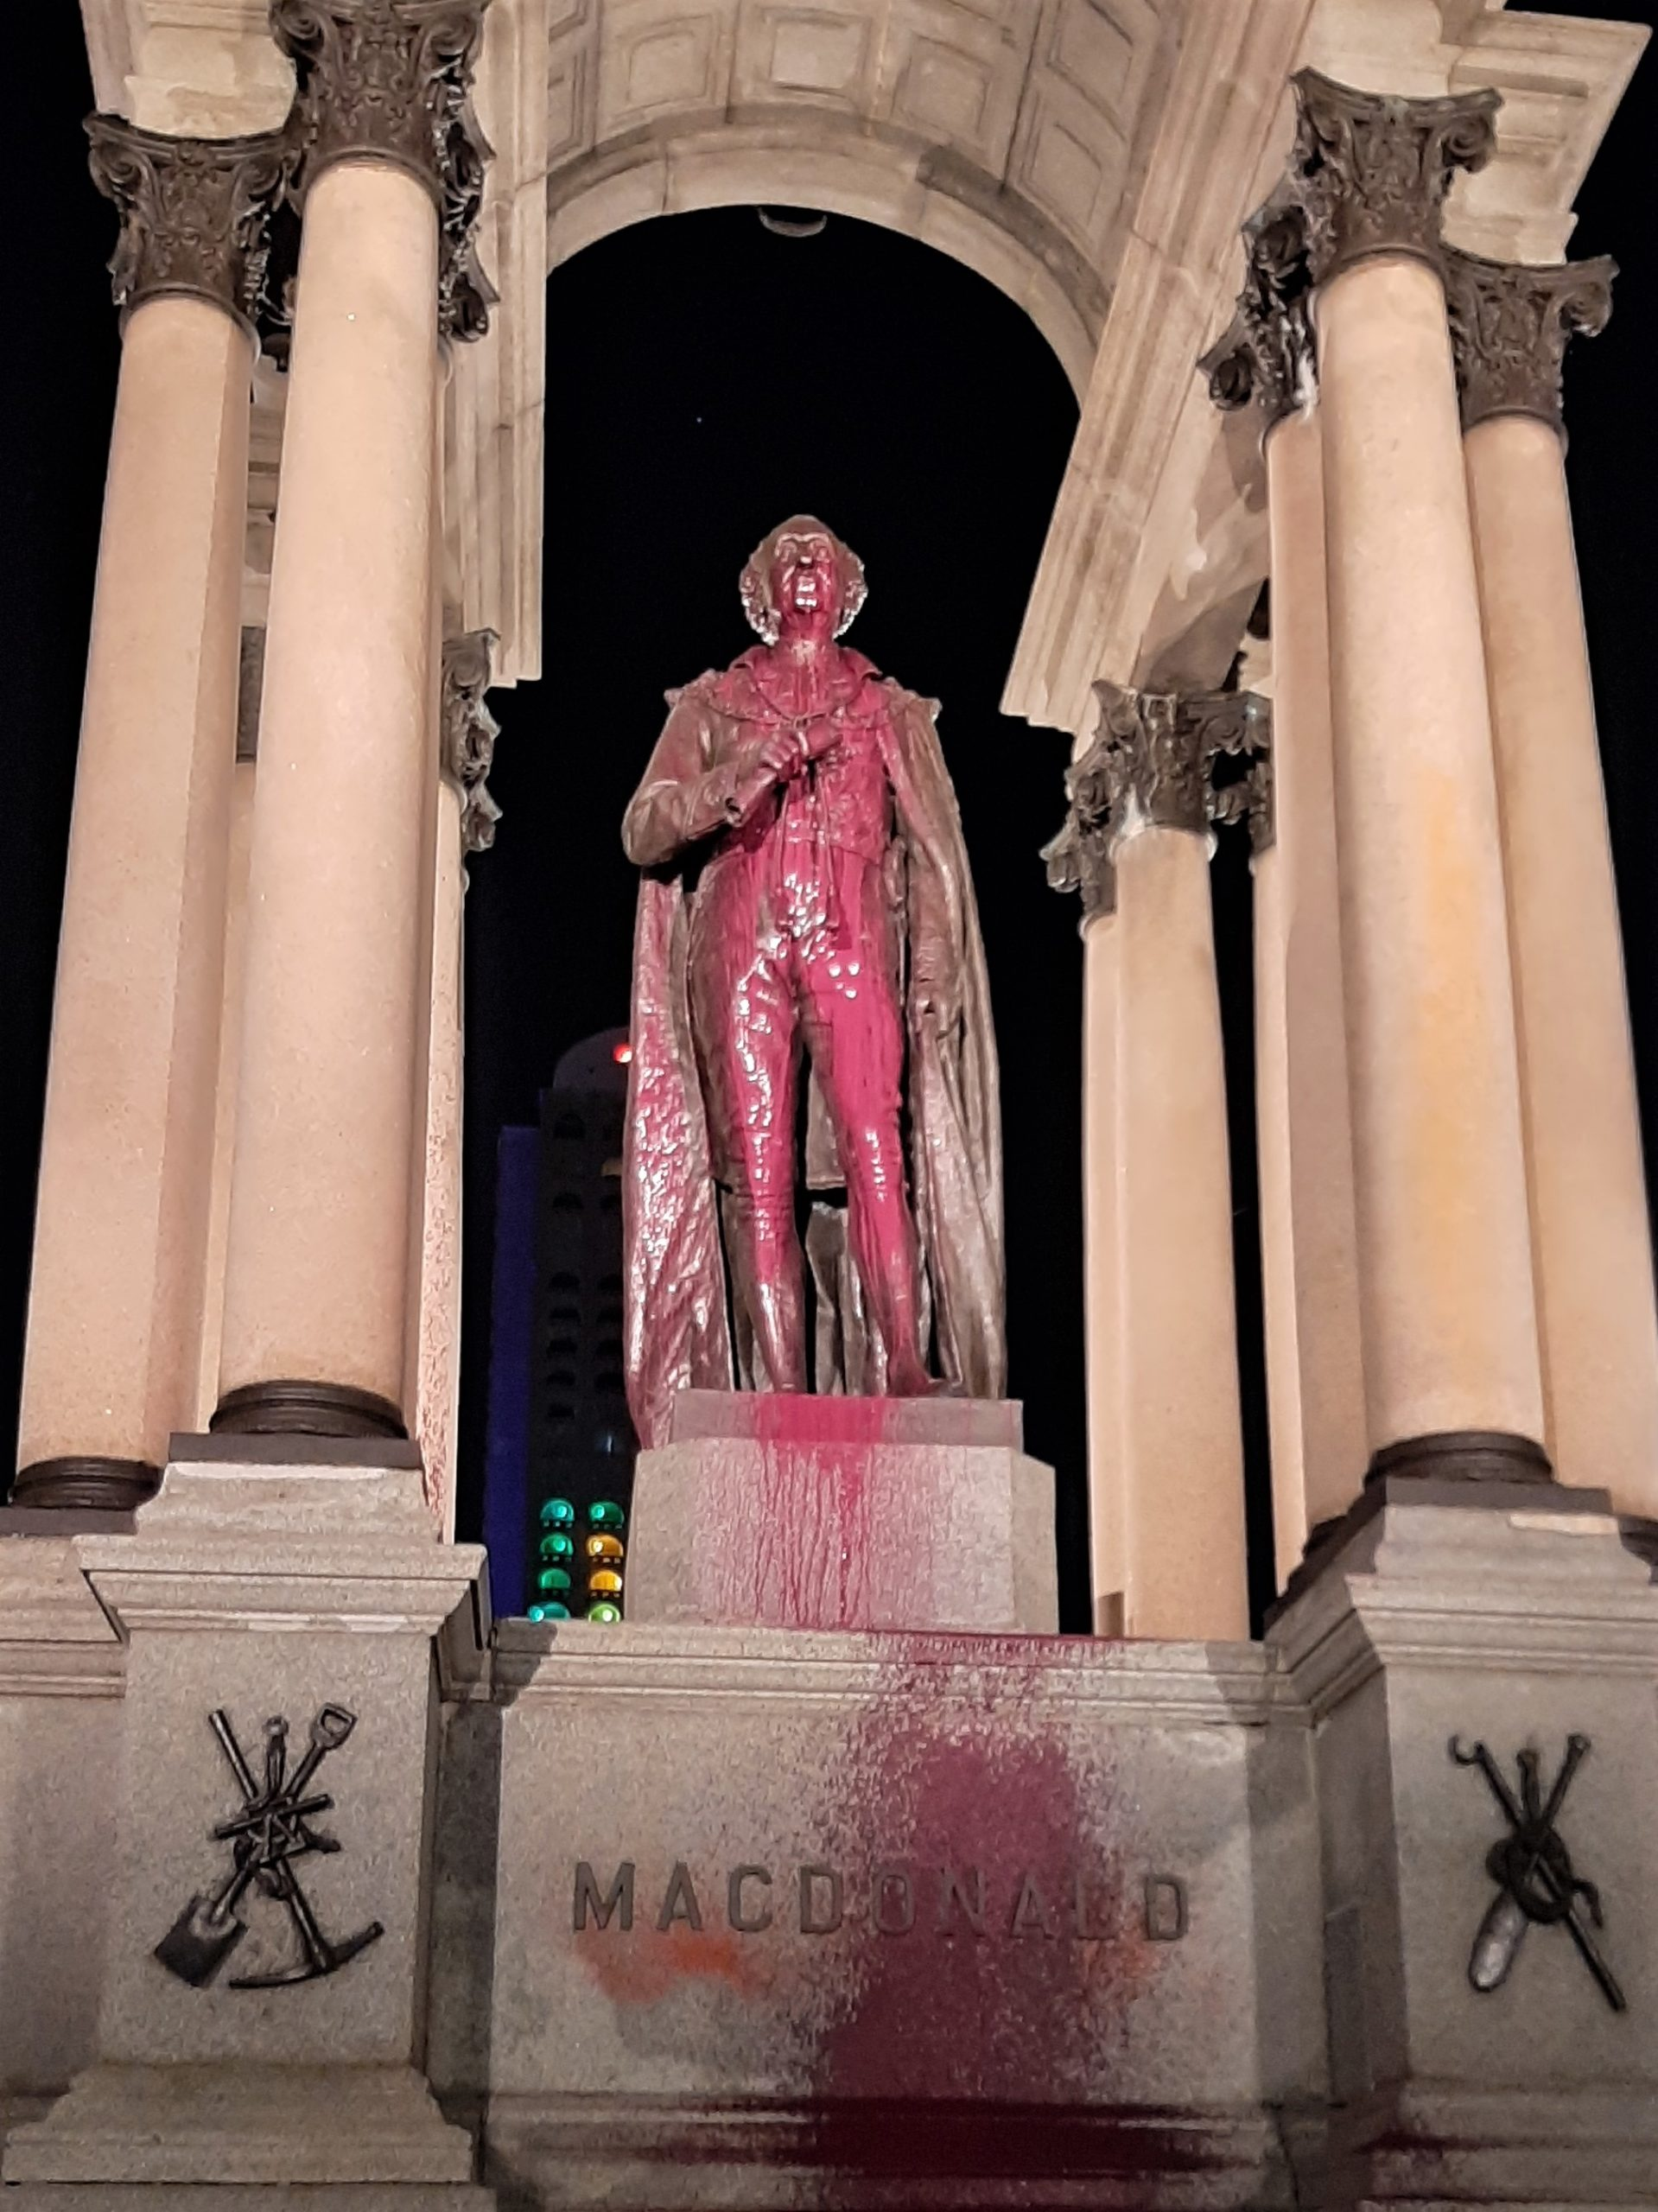 Racist John A. Macdonald Monument vandalized with paint